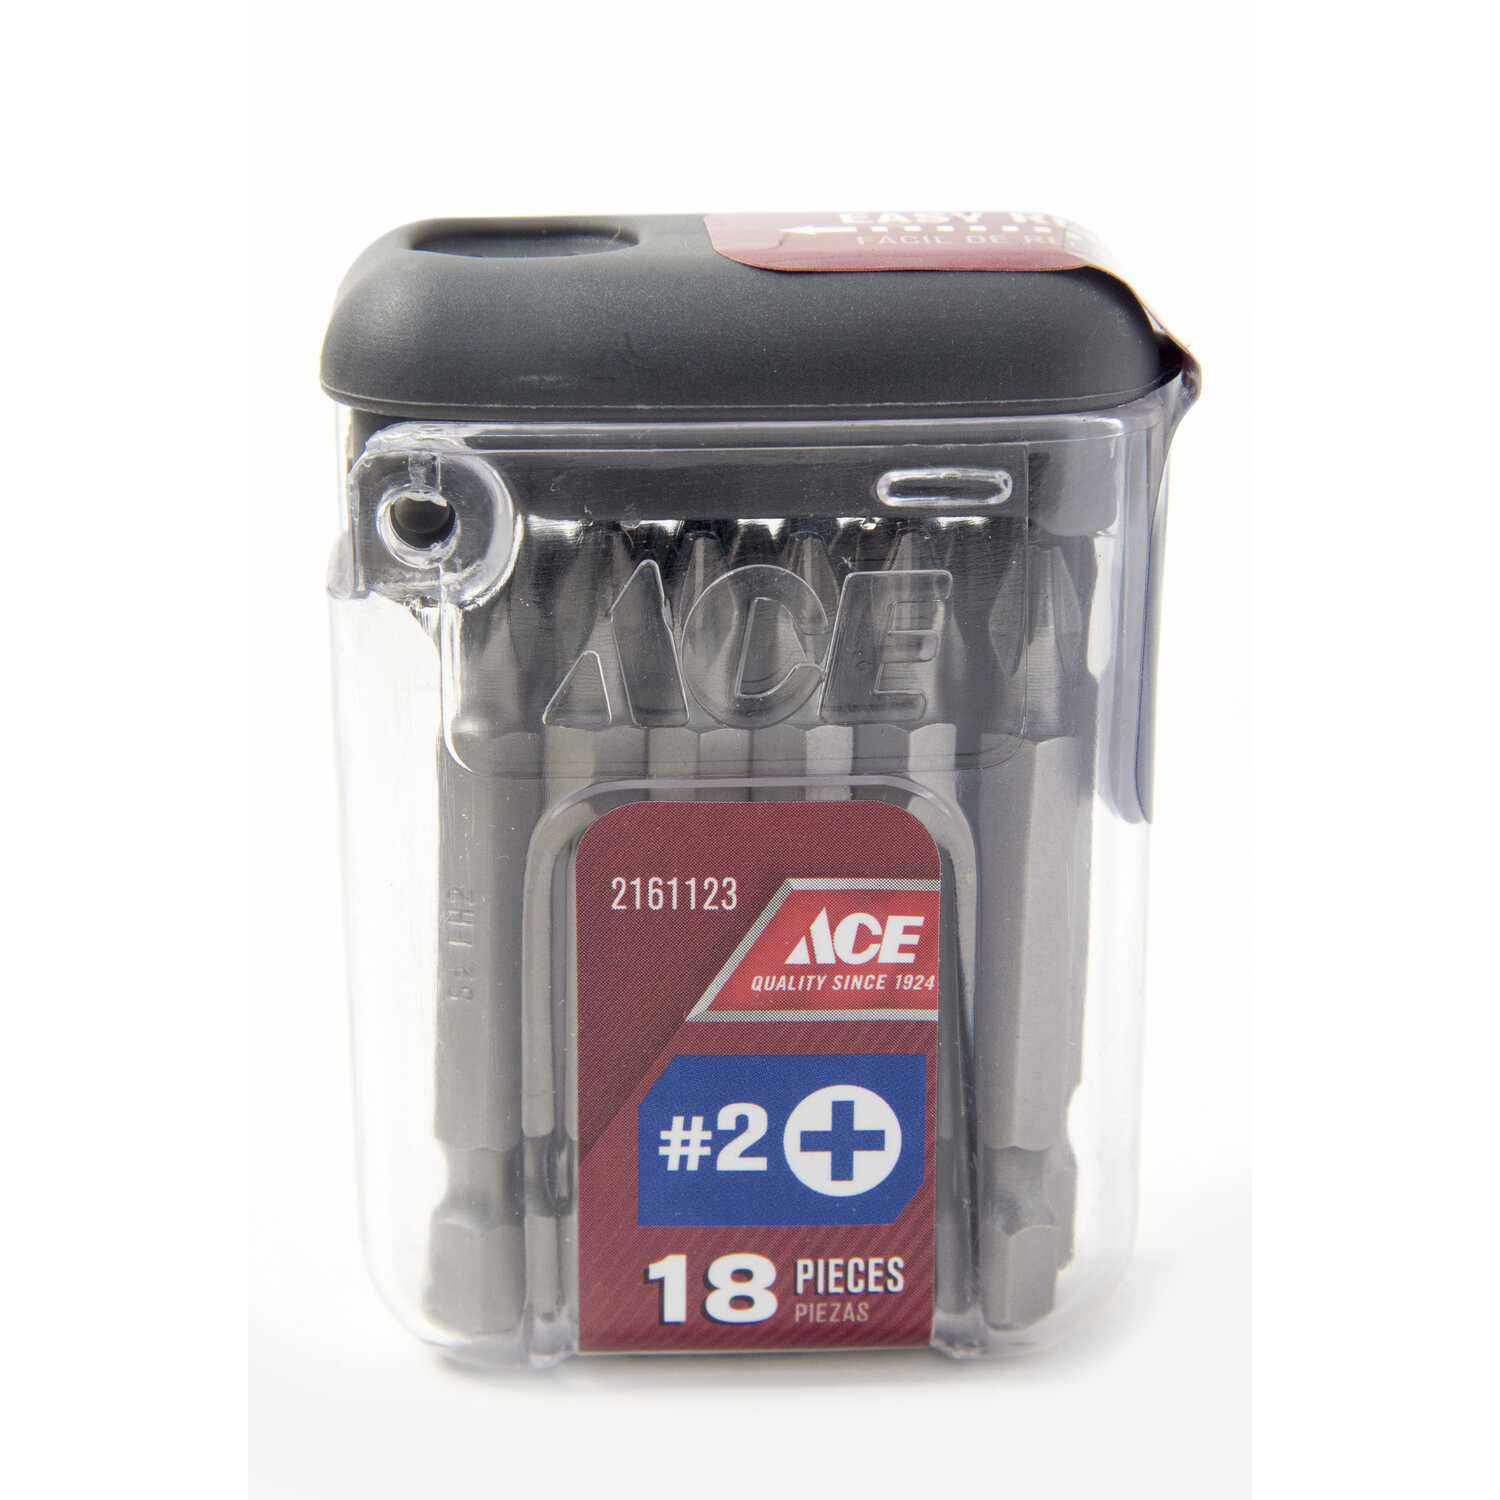 Ace  2   x 2 in. L Phillips  Screwdriver Bit  1/4 in. 18 pc. Quick-Change Hex Shank  S2 Tool Steel